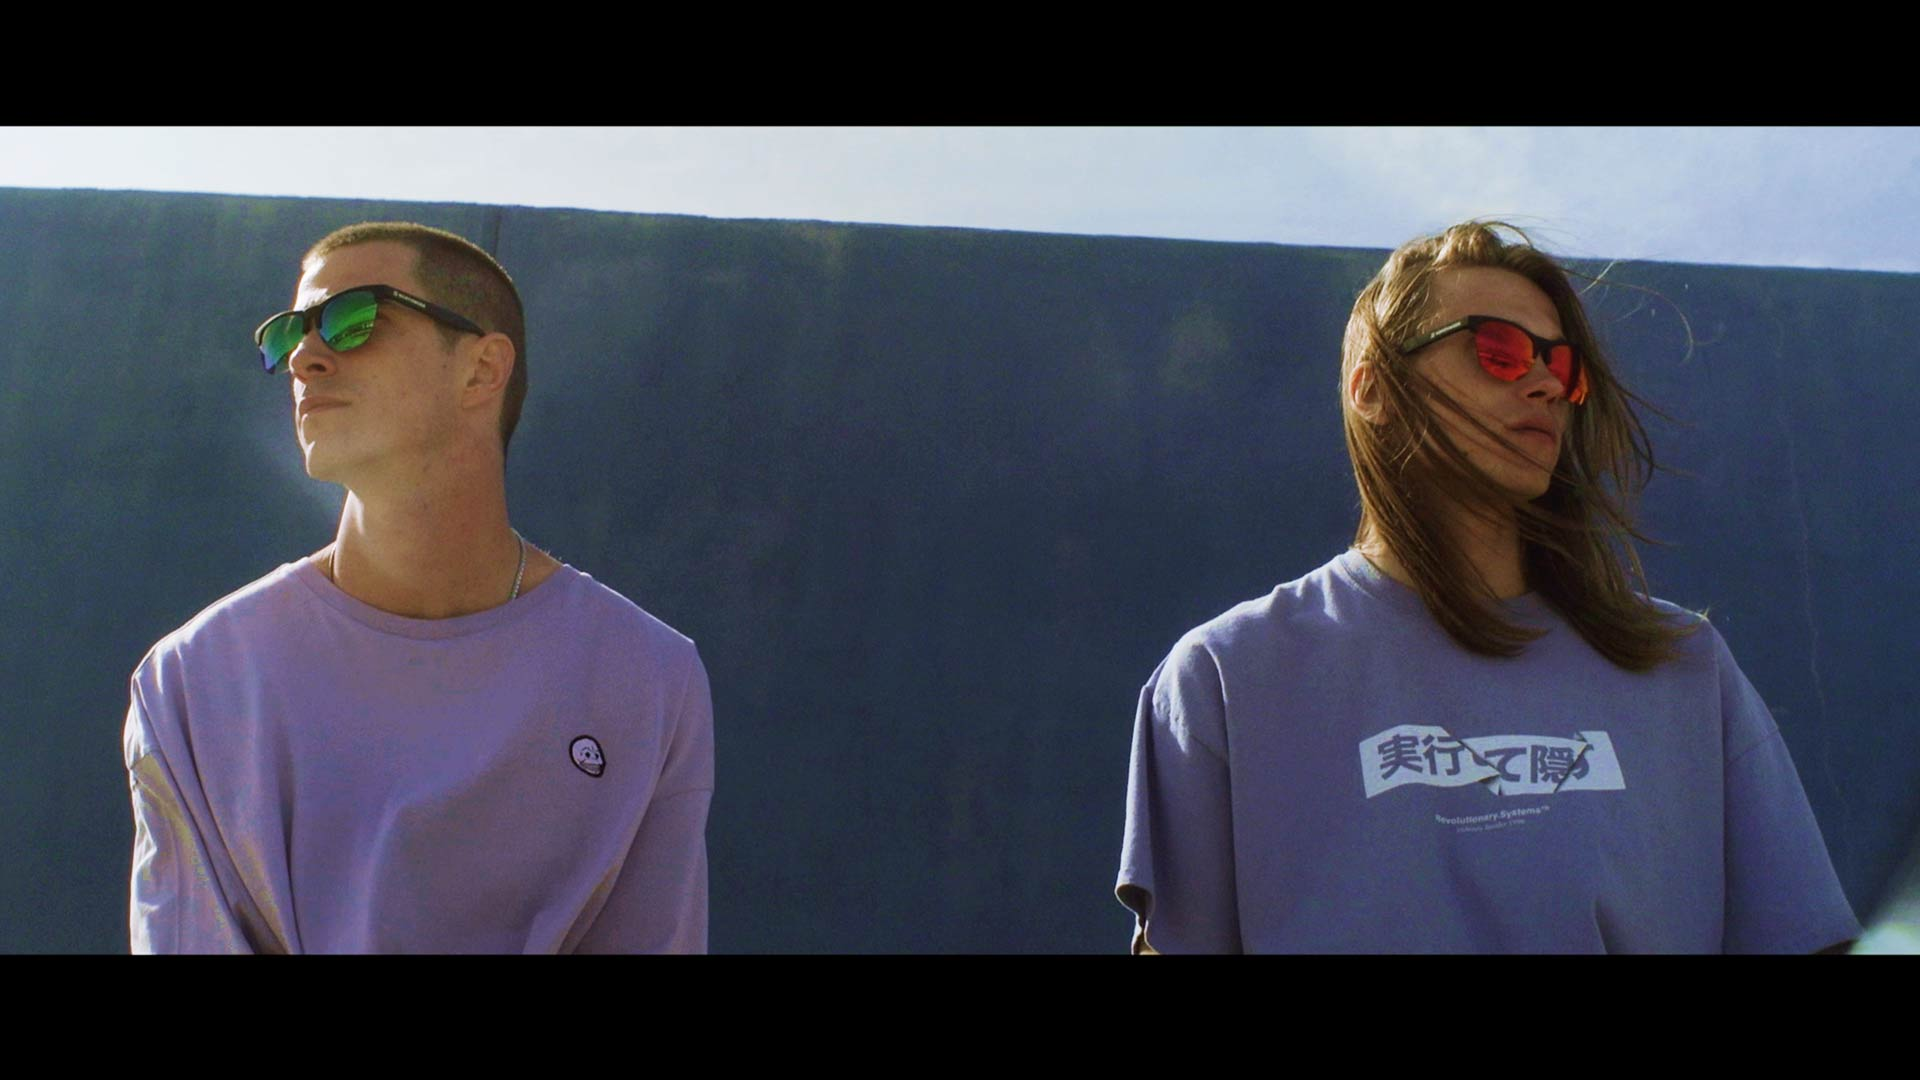 Northweek Sunglasses Barcelona skate hidestudio produccion spot fashionfilm